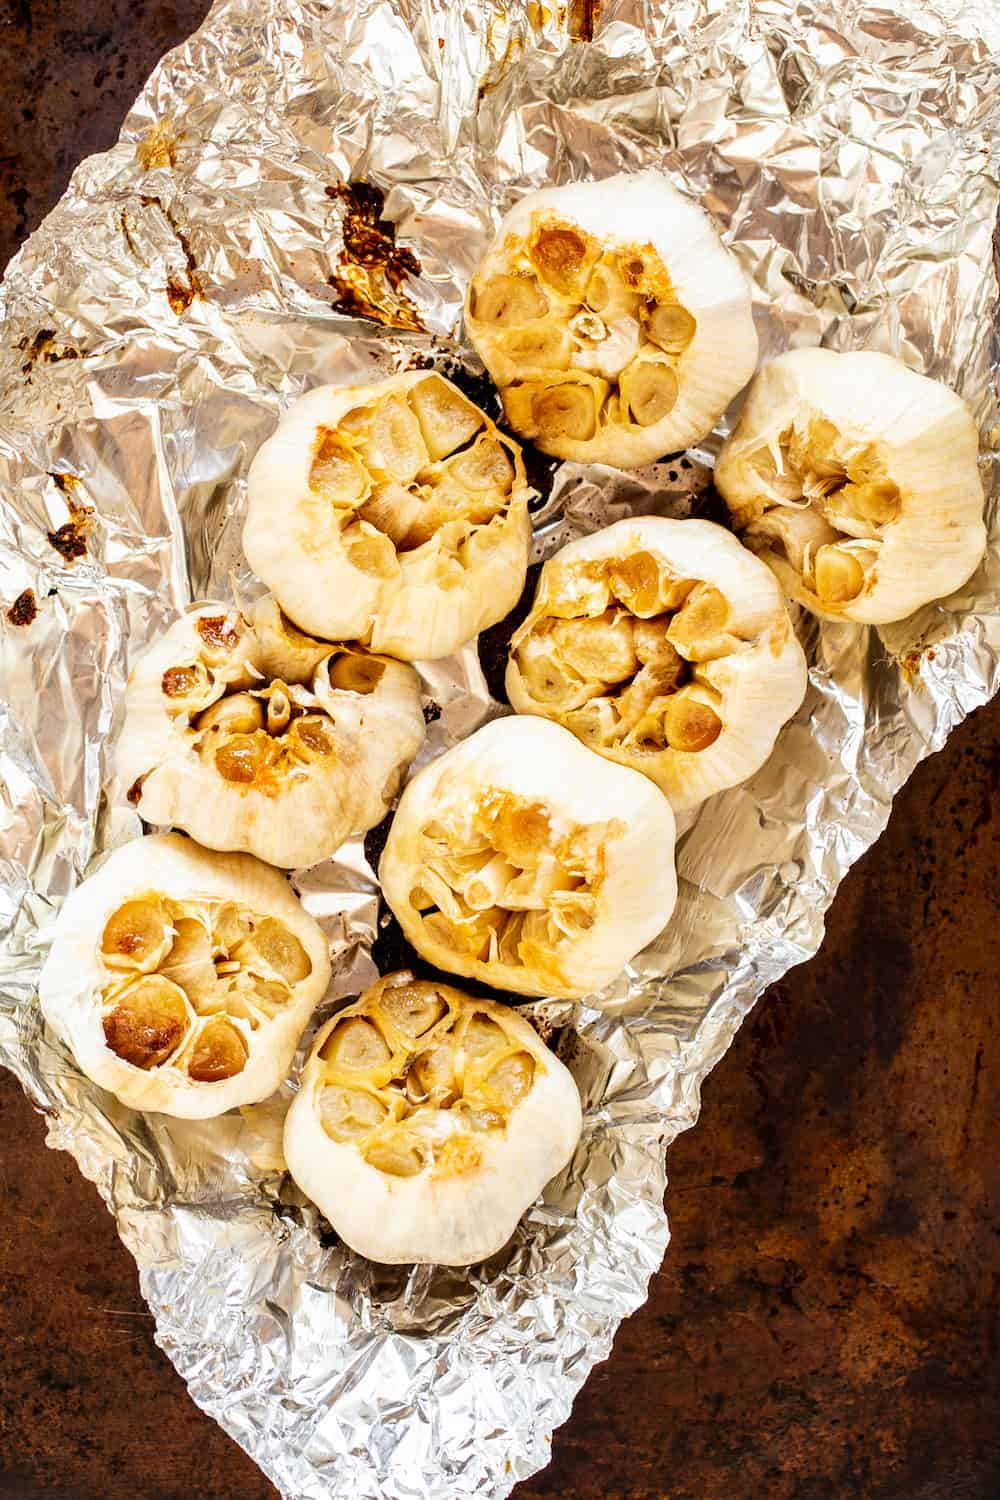 Roasted Garlic Makes Any Meal Better